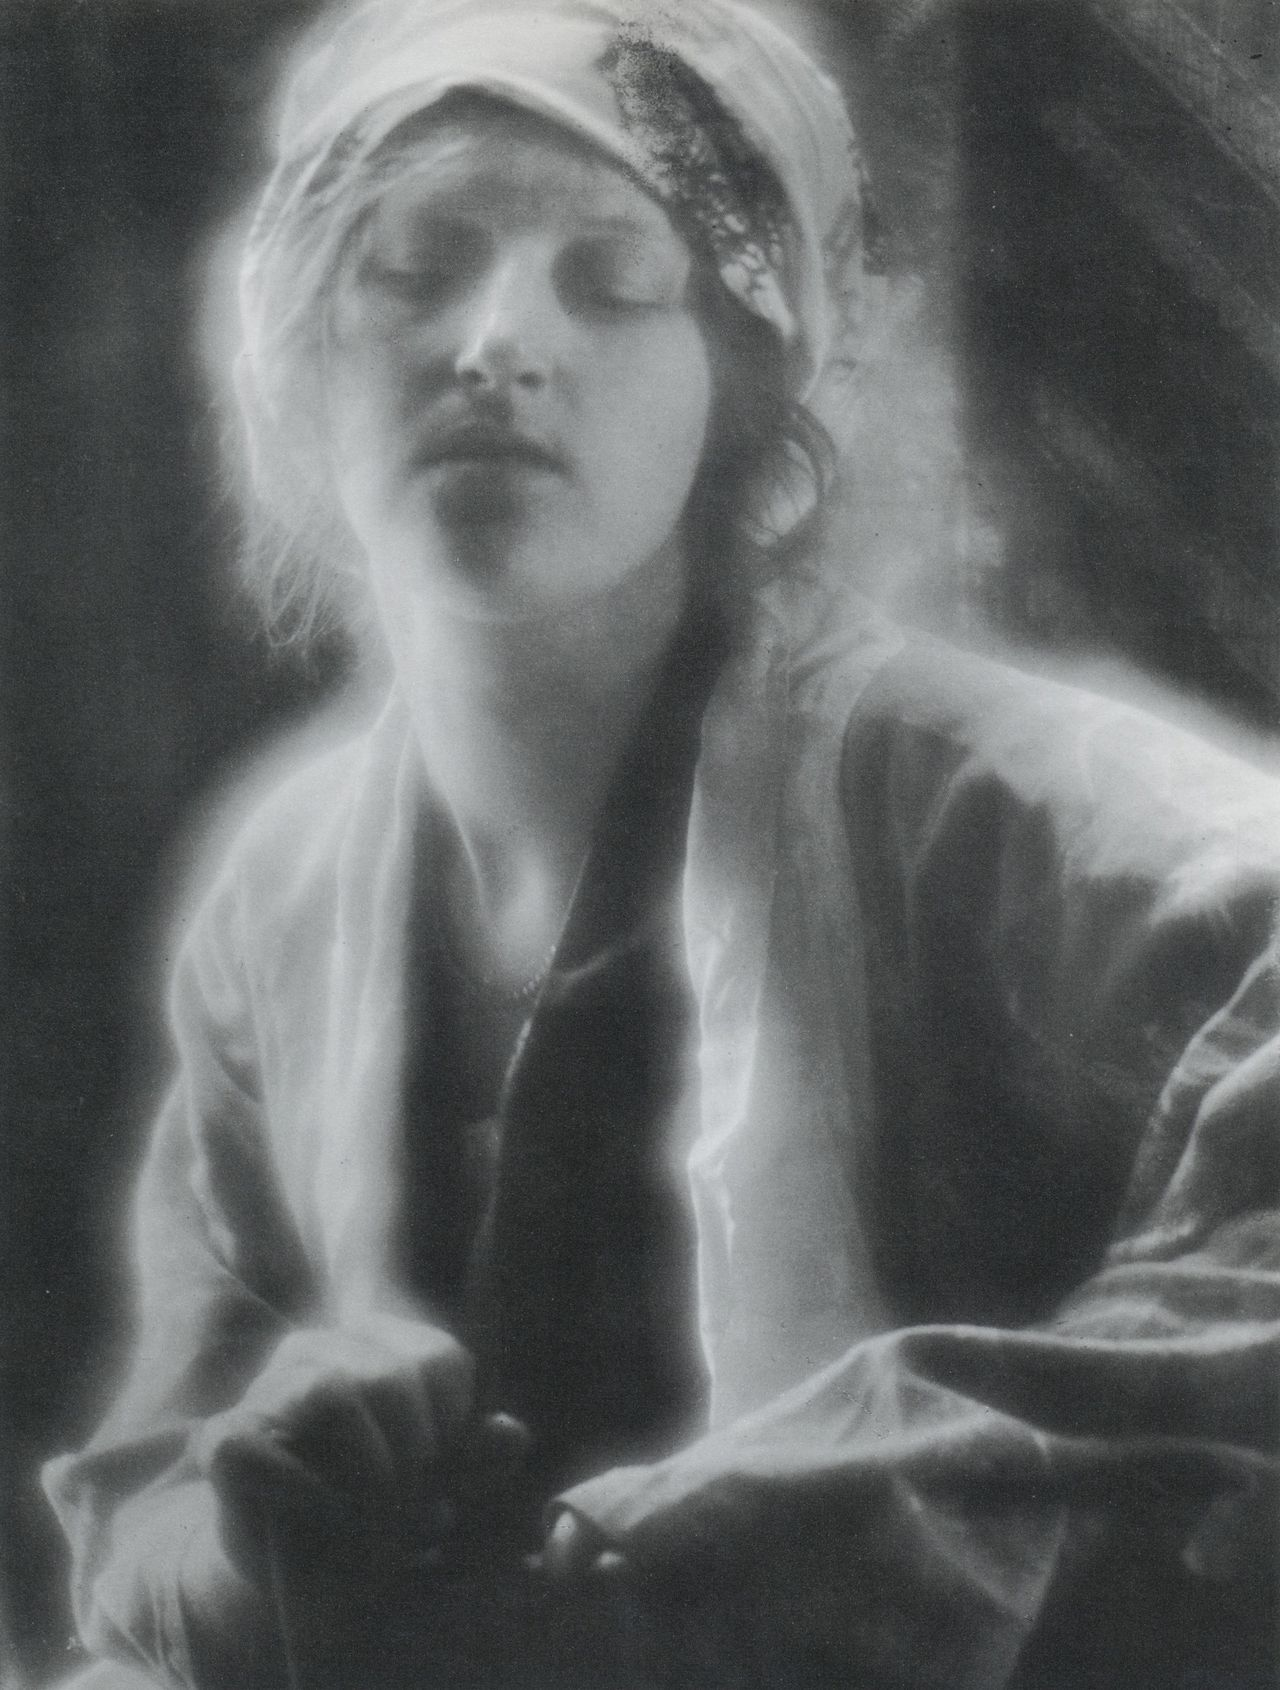 liquidnight:  Imogen Cunningham The Dream, 1910 Gelatin silver print From Imogen Cunningham 1883 - 1976